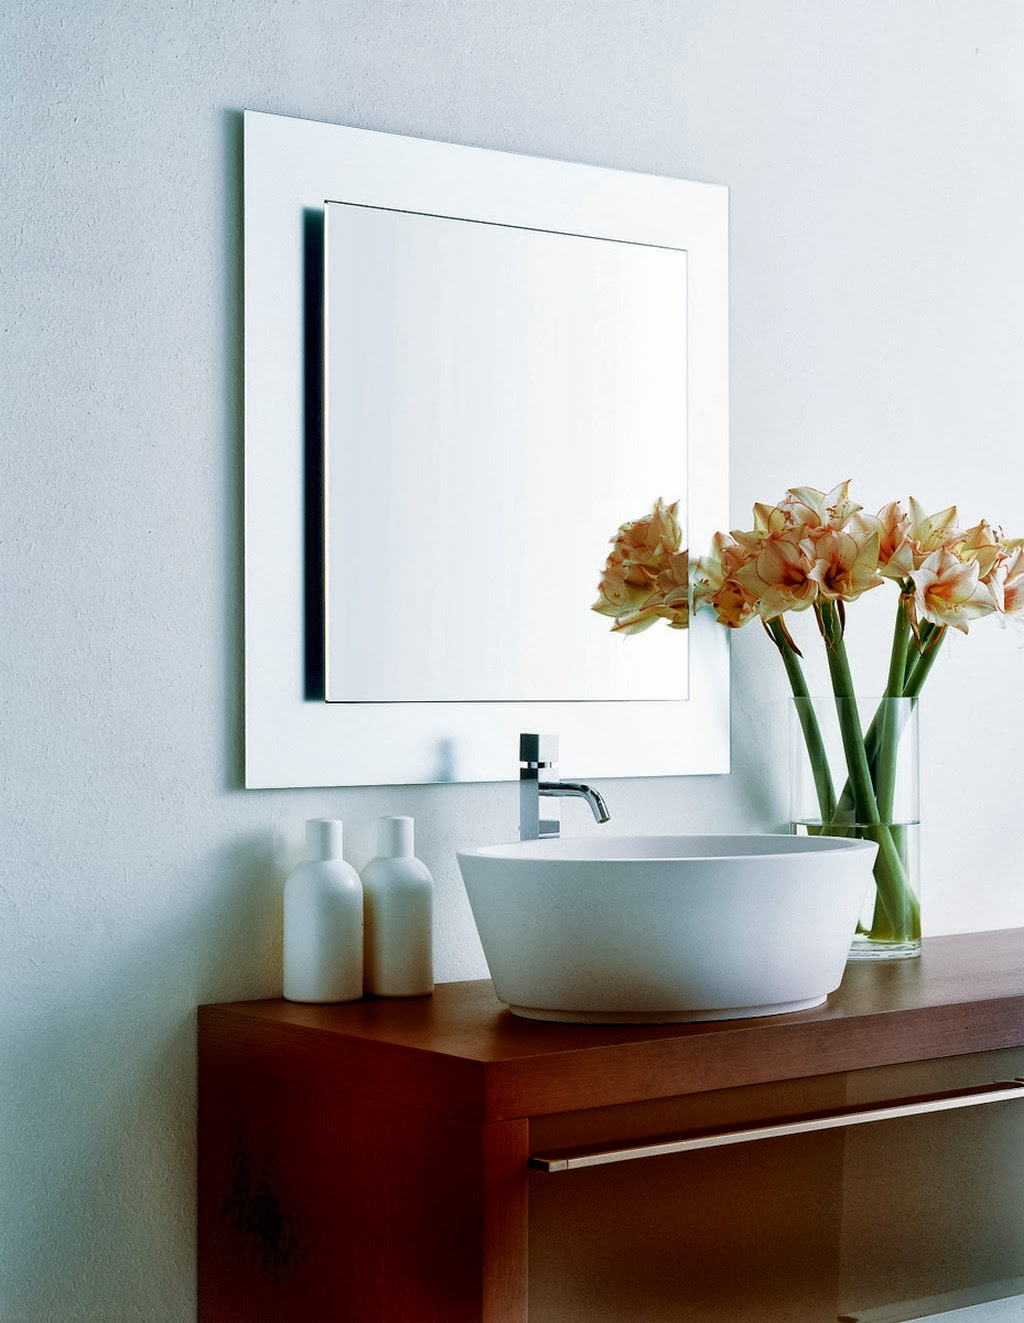 Groovy Bathroom Designs Ewdinteriors Largest Home Design Picture Inspirations Pitcheantrous